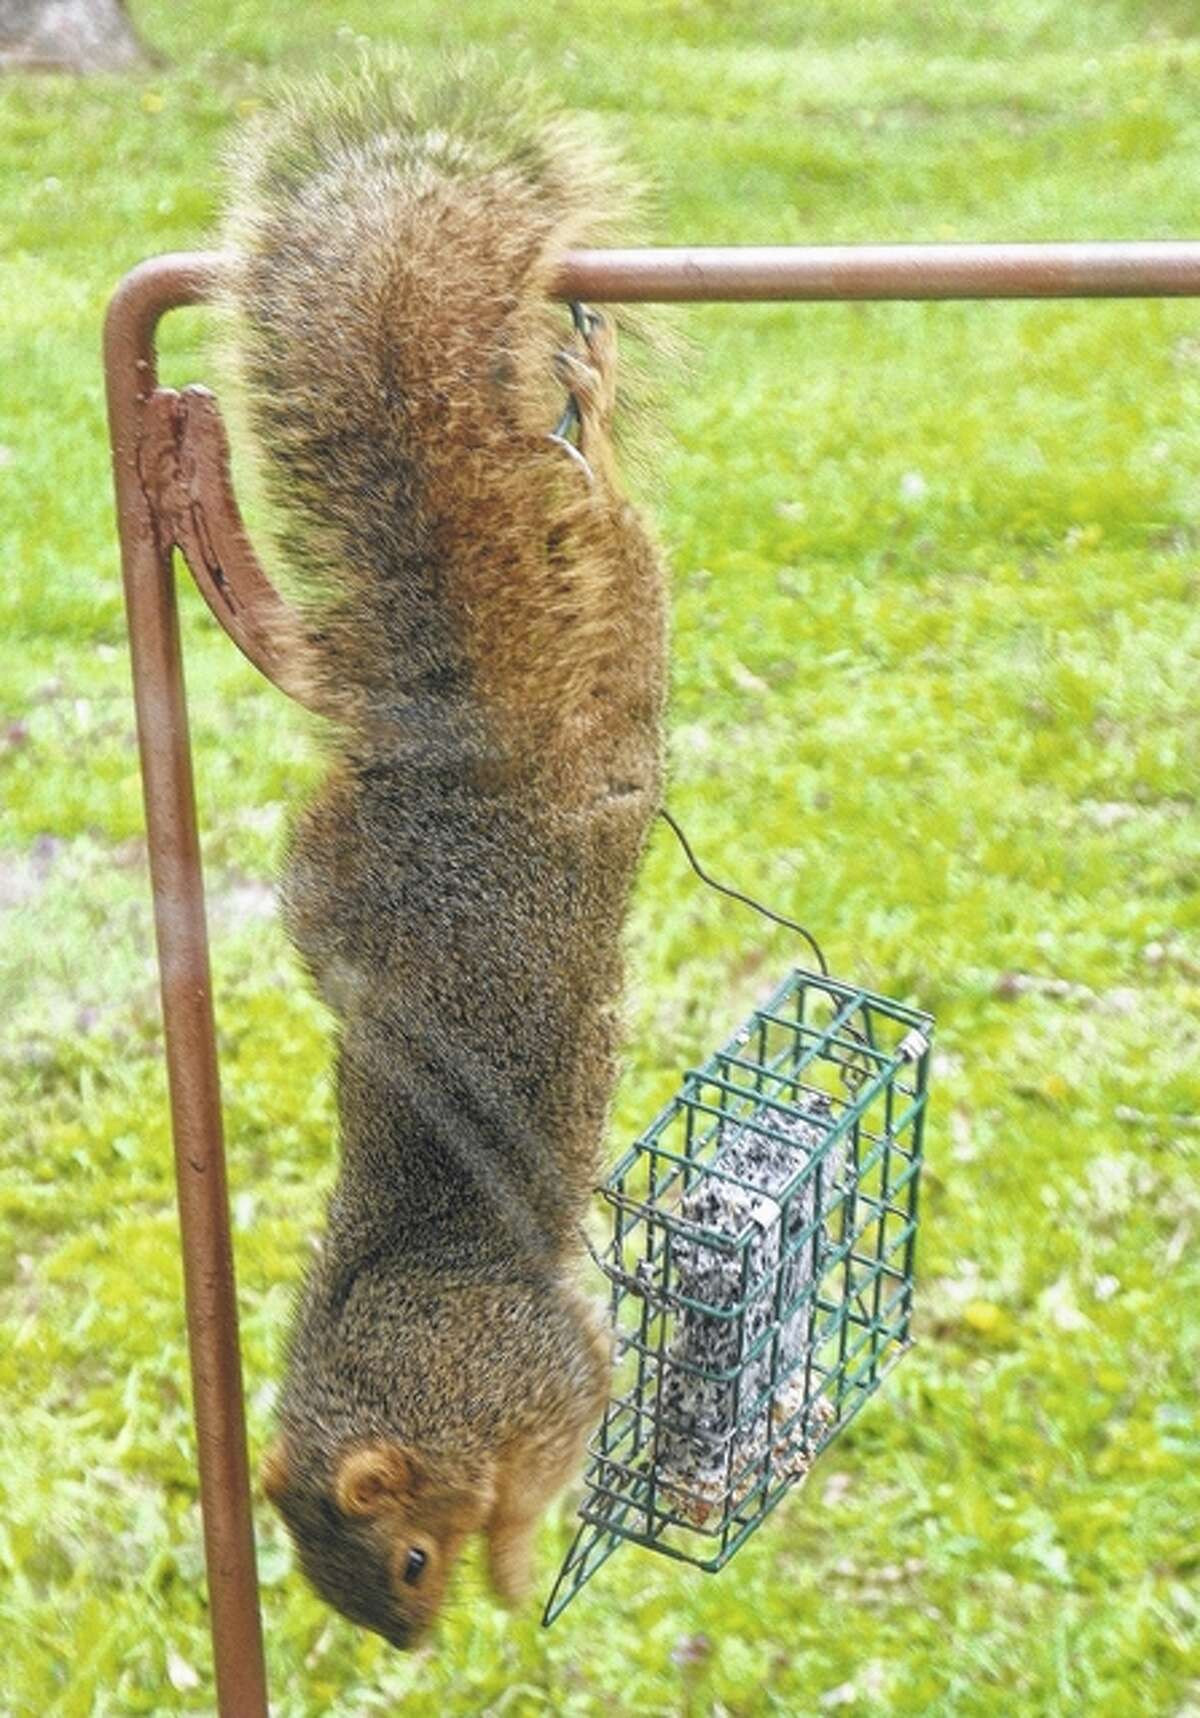 An acrobatic squirrel hangs by its tail to get a snack.